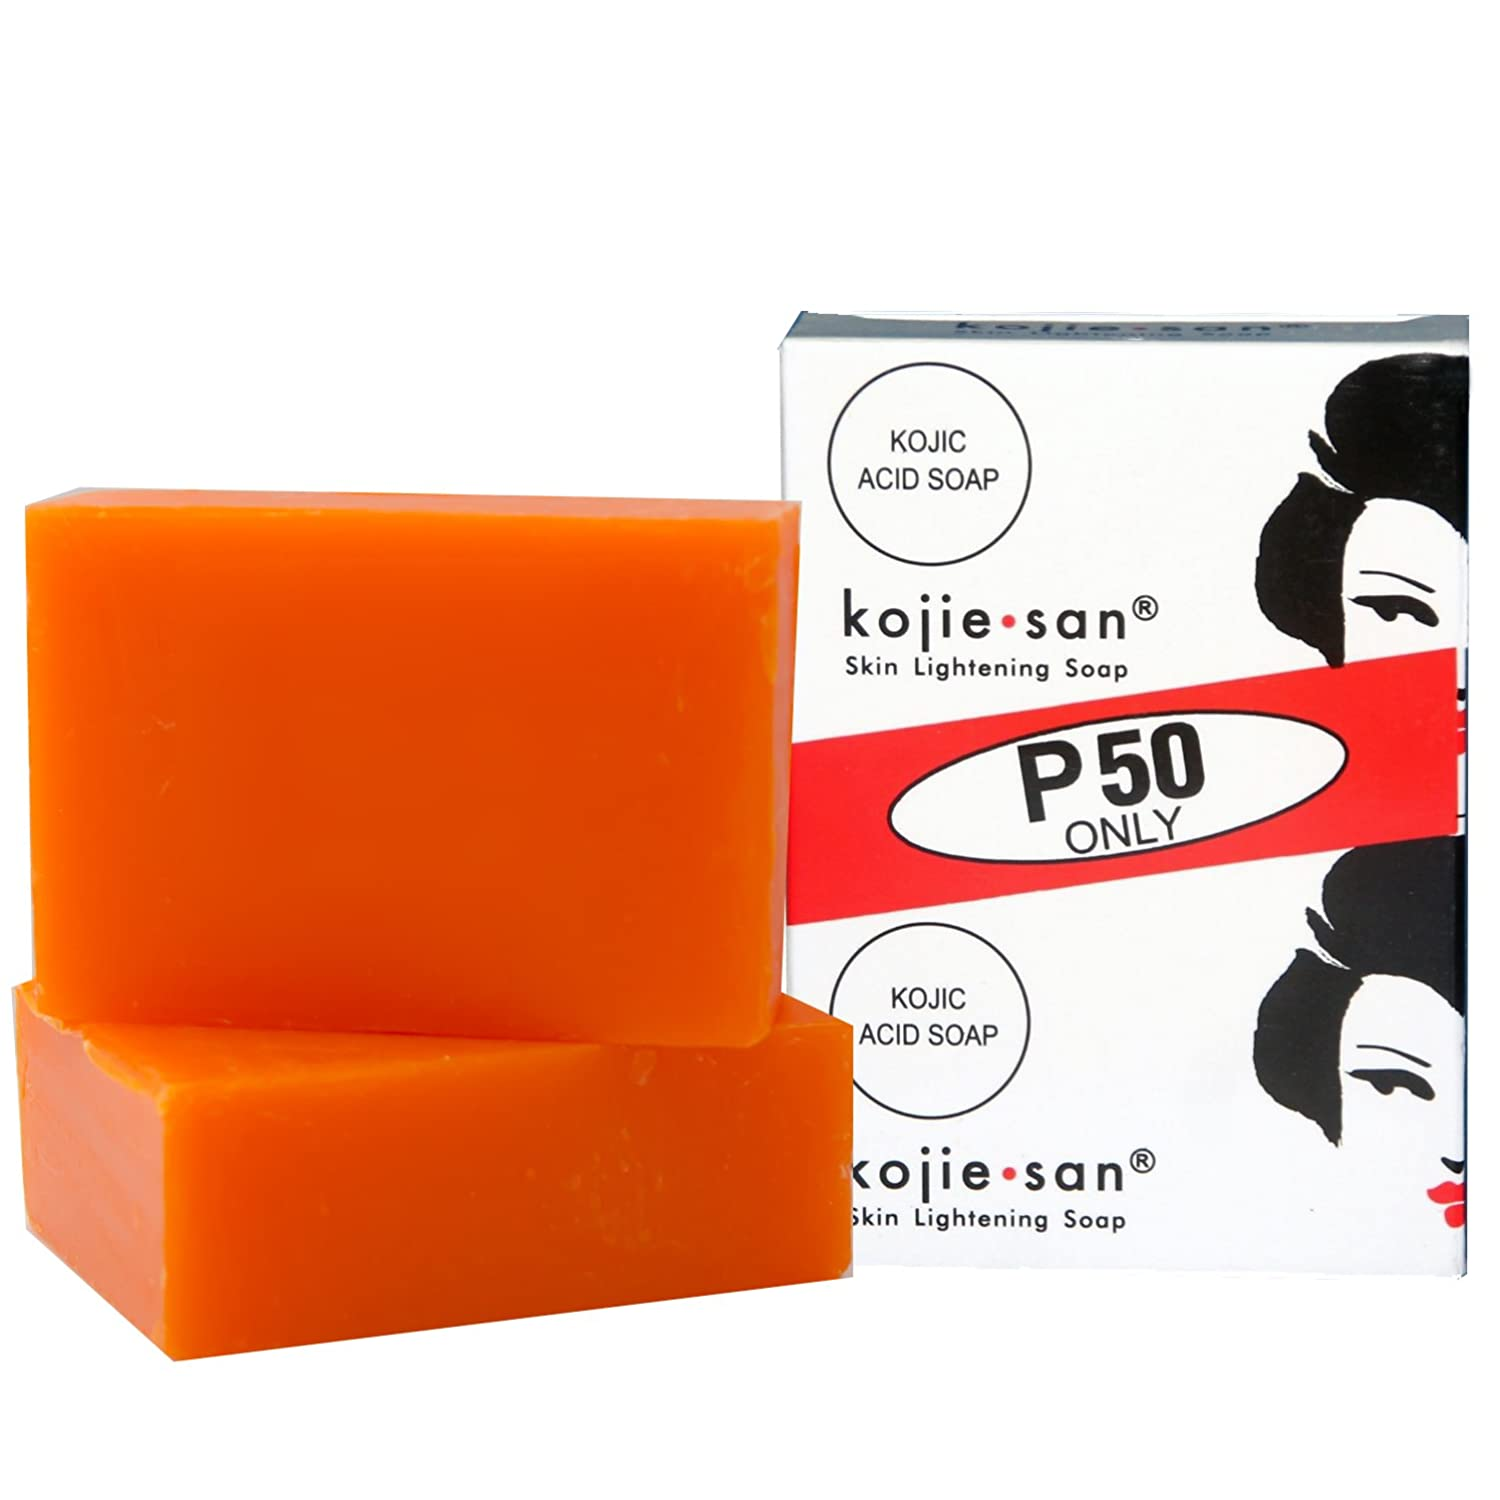 2 Bars Kojie San Kojic Acid Soap 65g per bar original kojie san bleaching soap for dark skin and lightening and brightness by BEVI